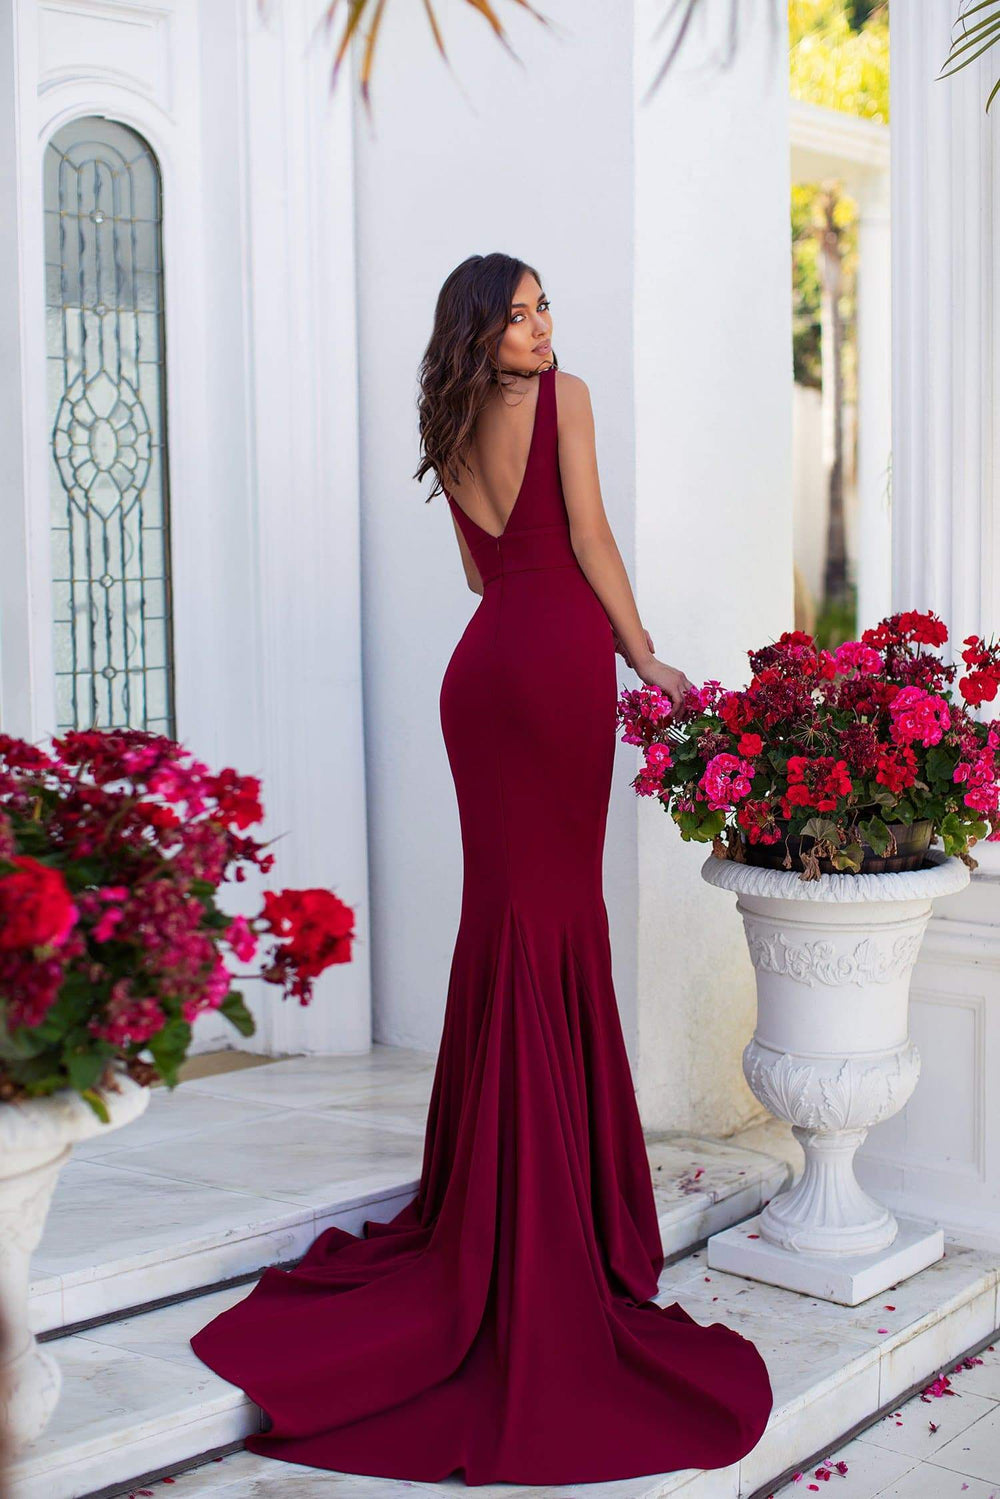 Jovana - Burgundy Mermaid Gown with Plunge Neckline & Long Train